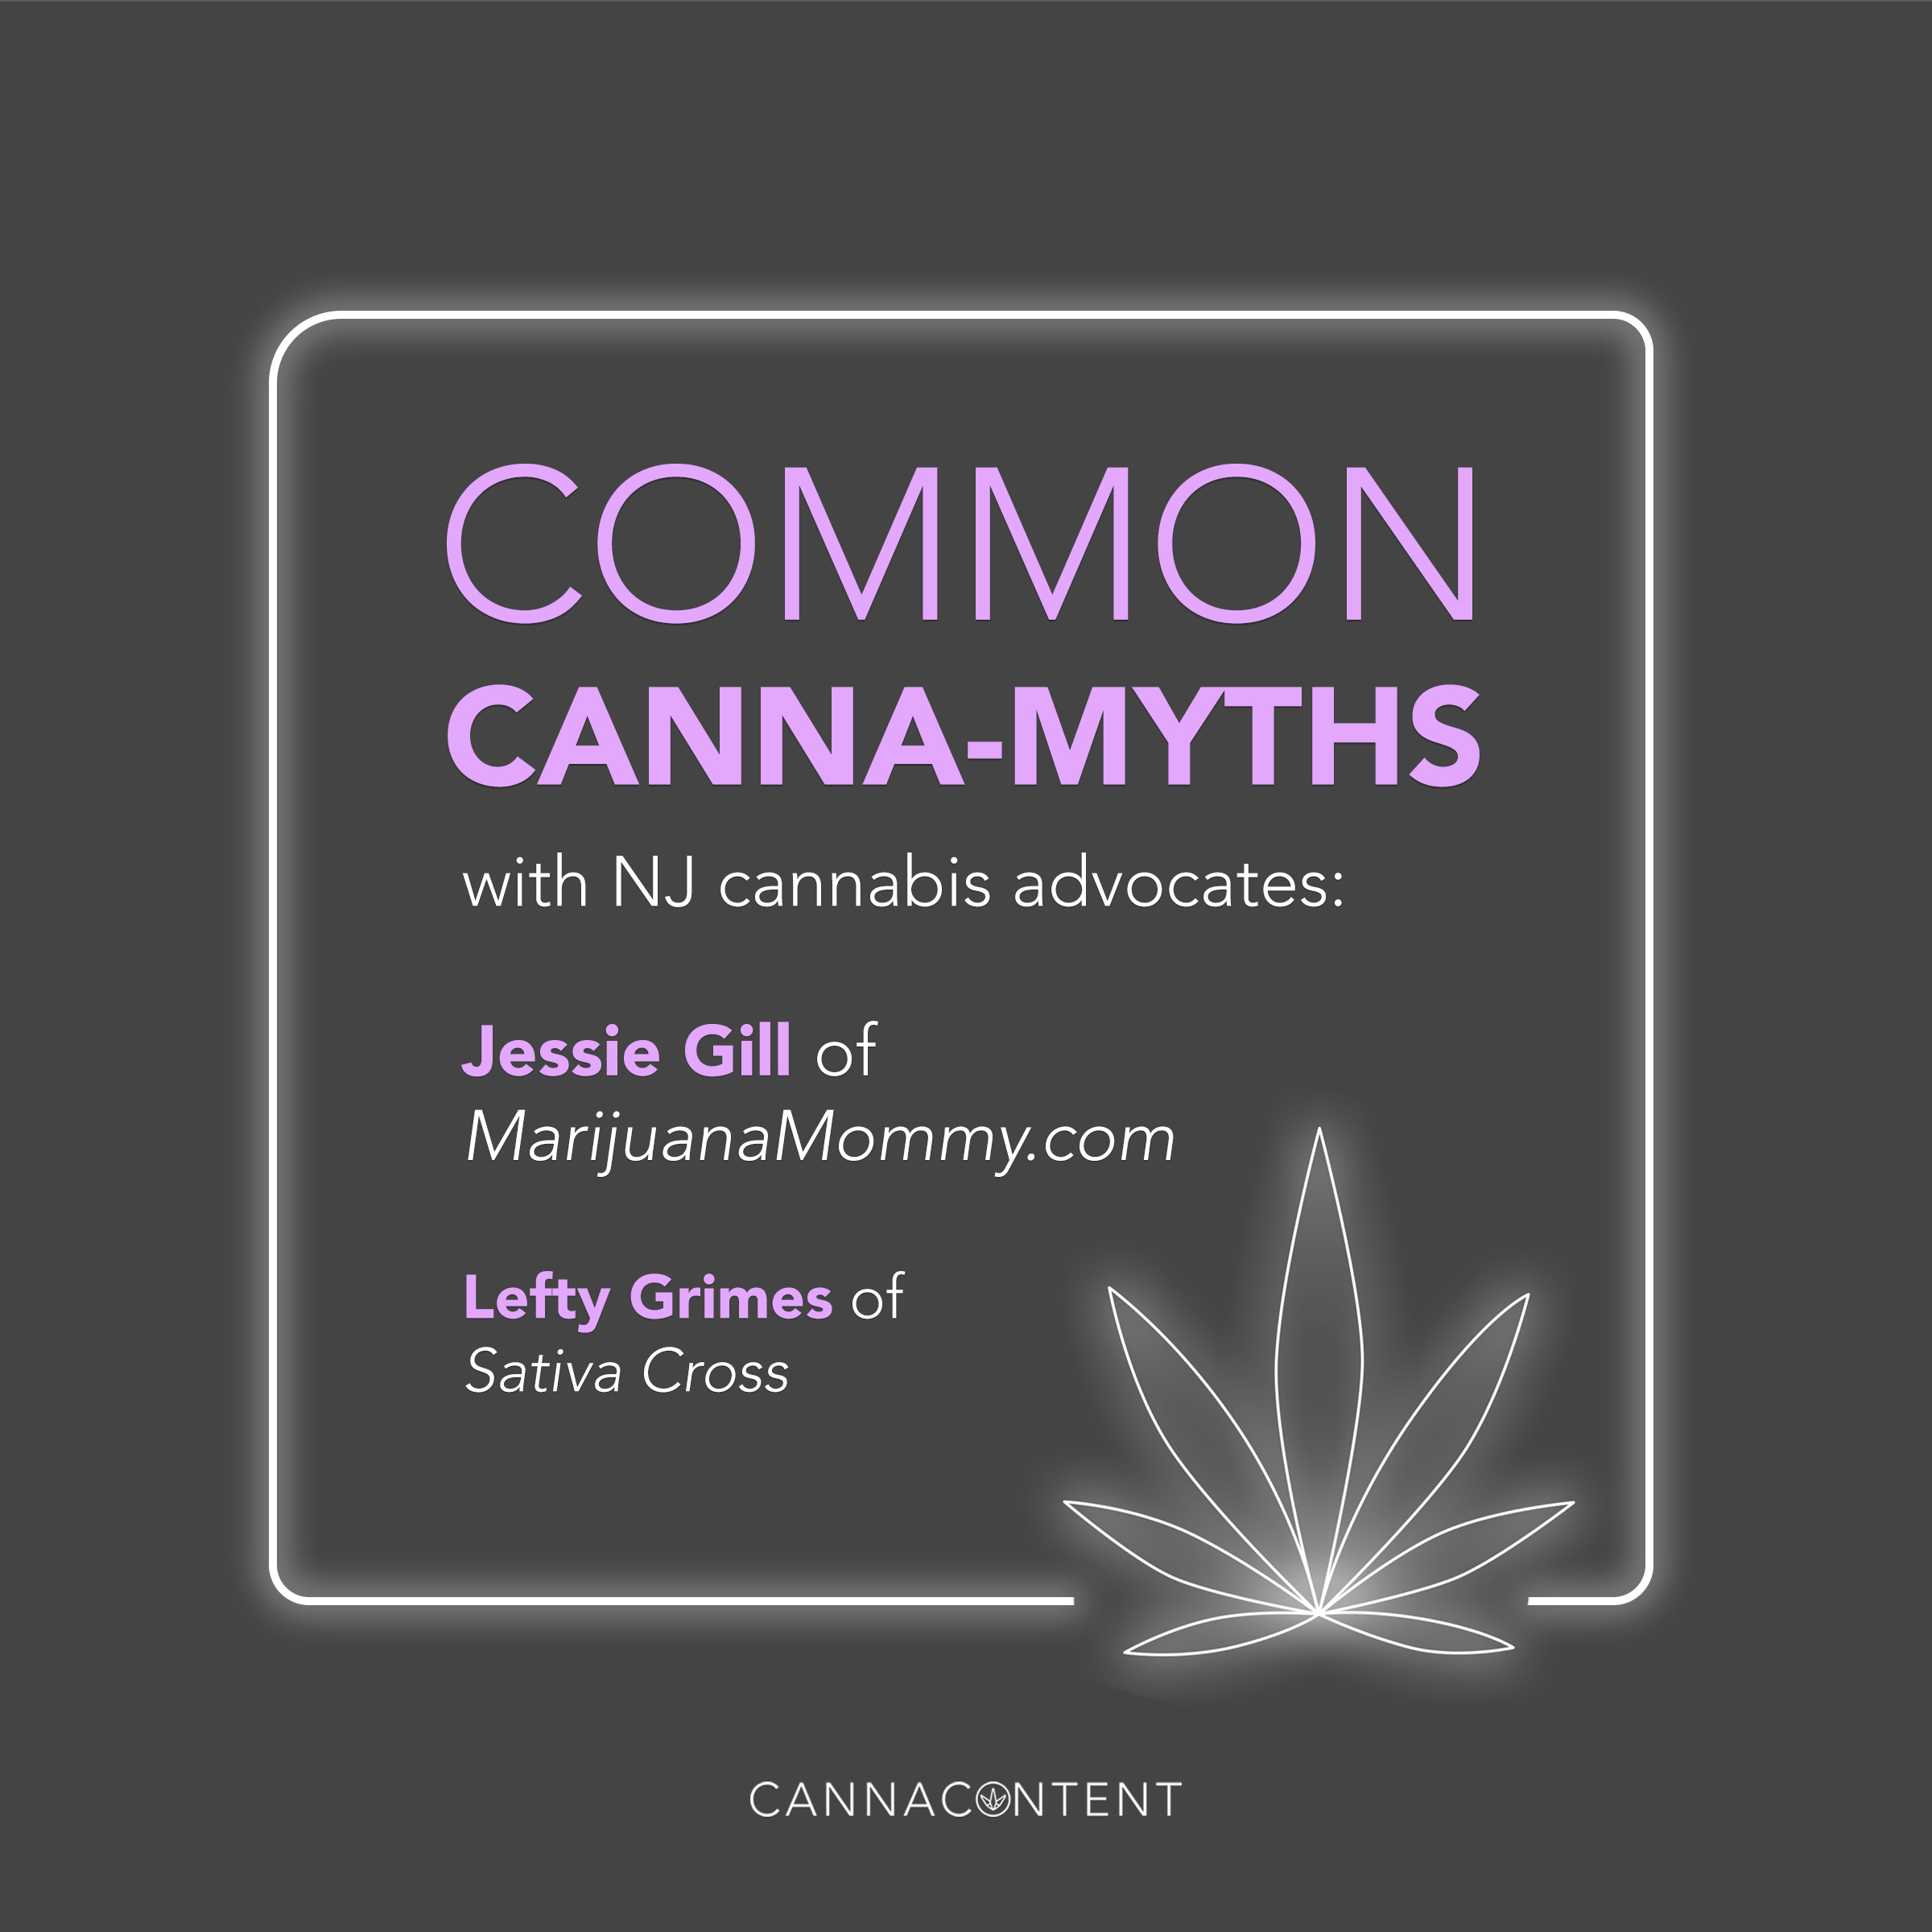 Debunk the Skunk: Responding to Common Cannabis Myths